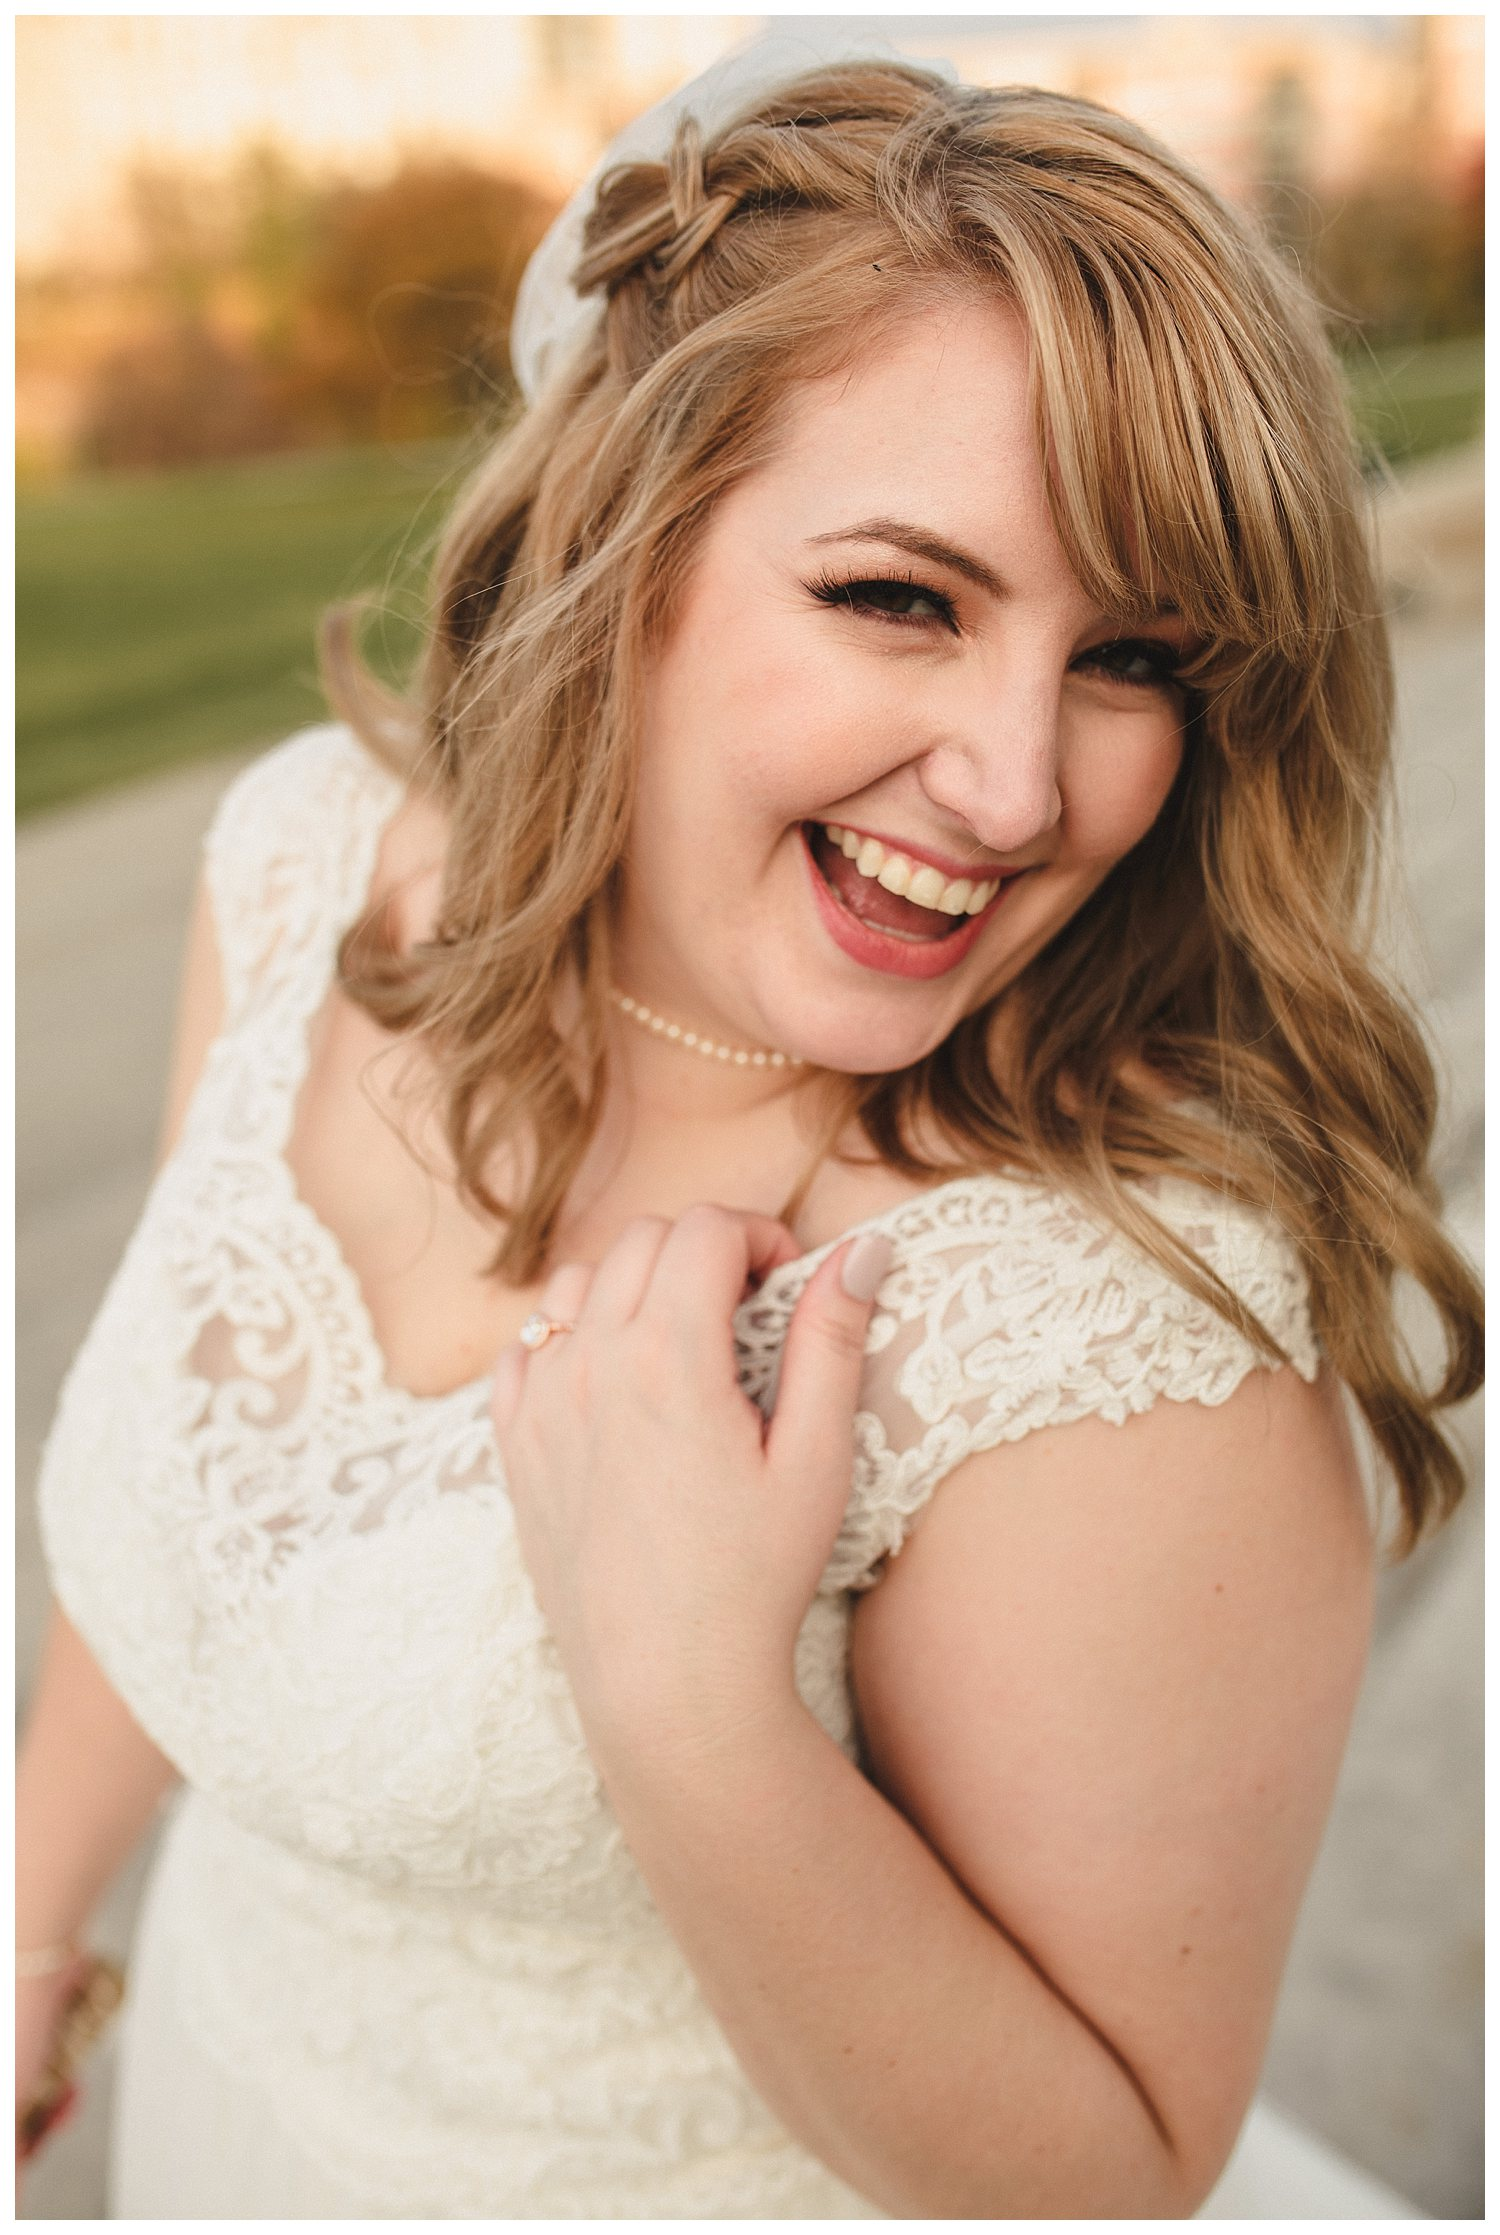 Kelsey_Diane_Photography_Loose_Mansion_Wedding_Photography_Kansas_City_Victor_Lyndsay_0362.jpg